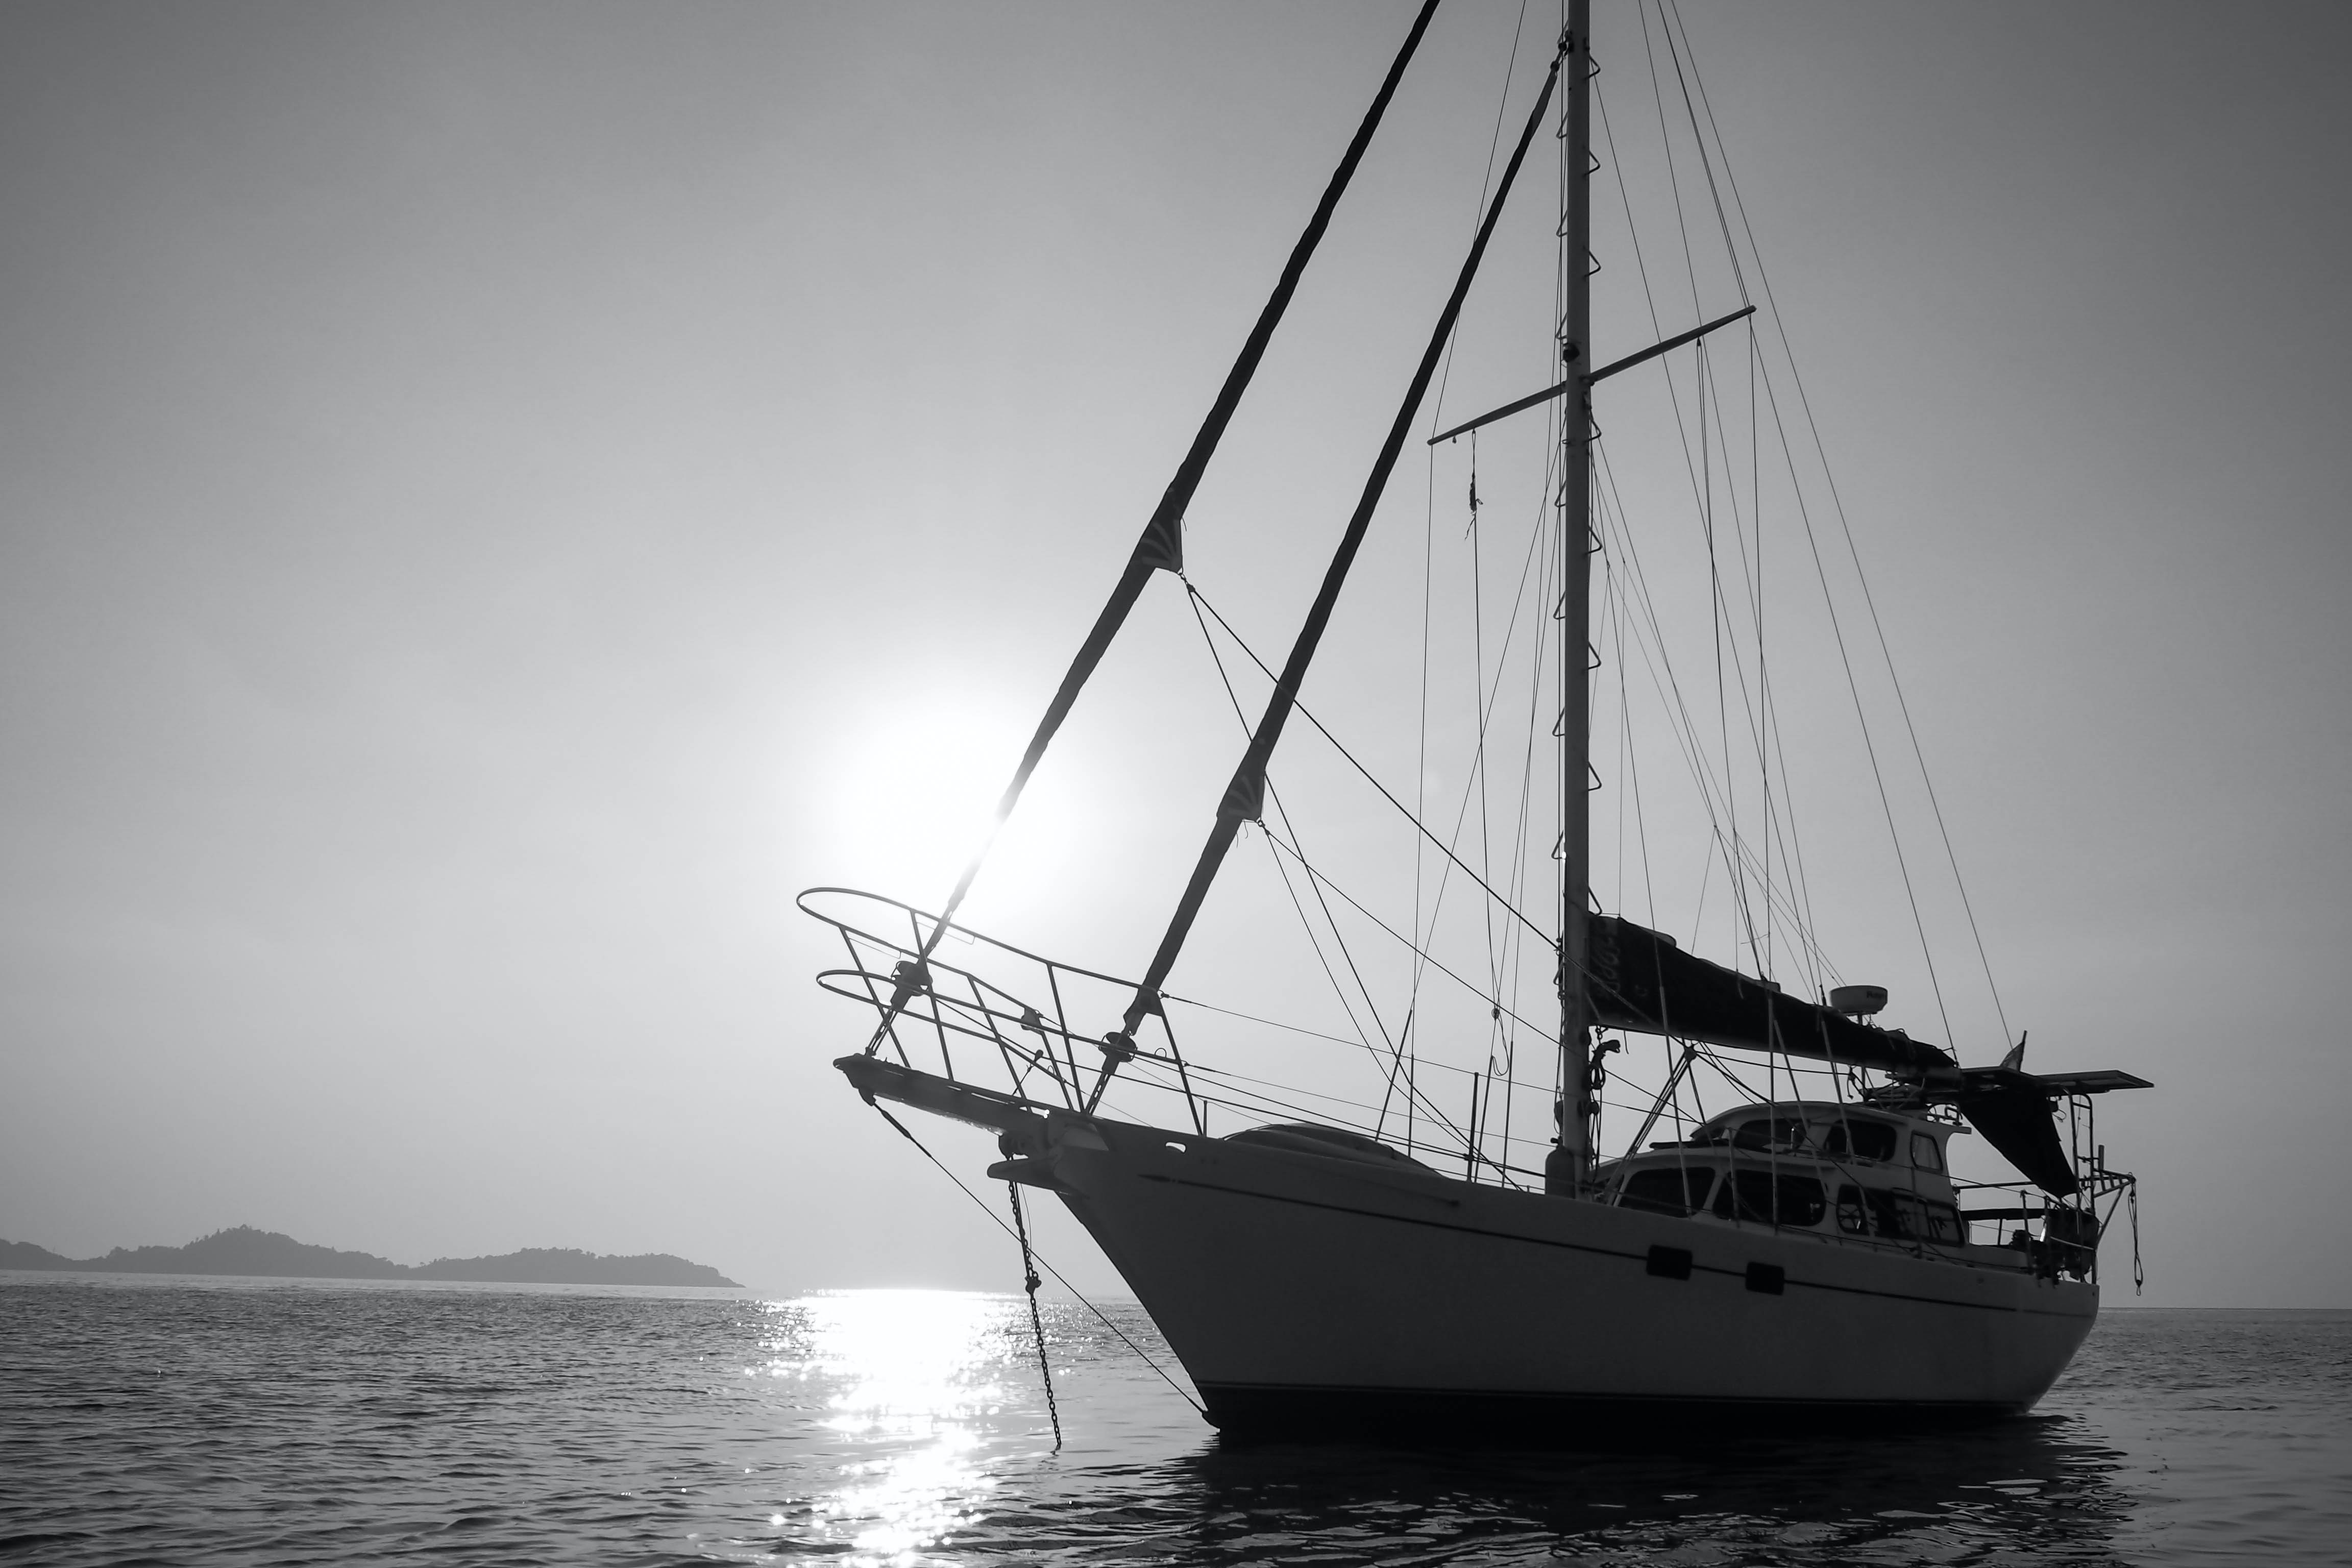 Black and white shot of yacht on sea with clear sky and sun in background